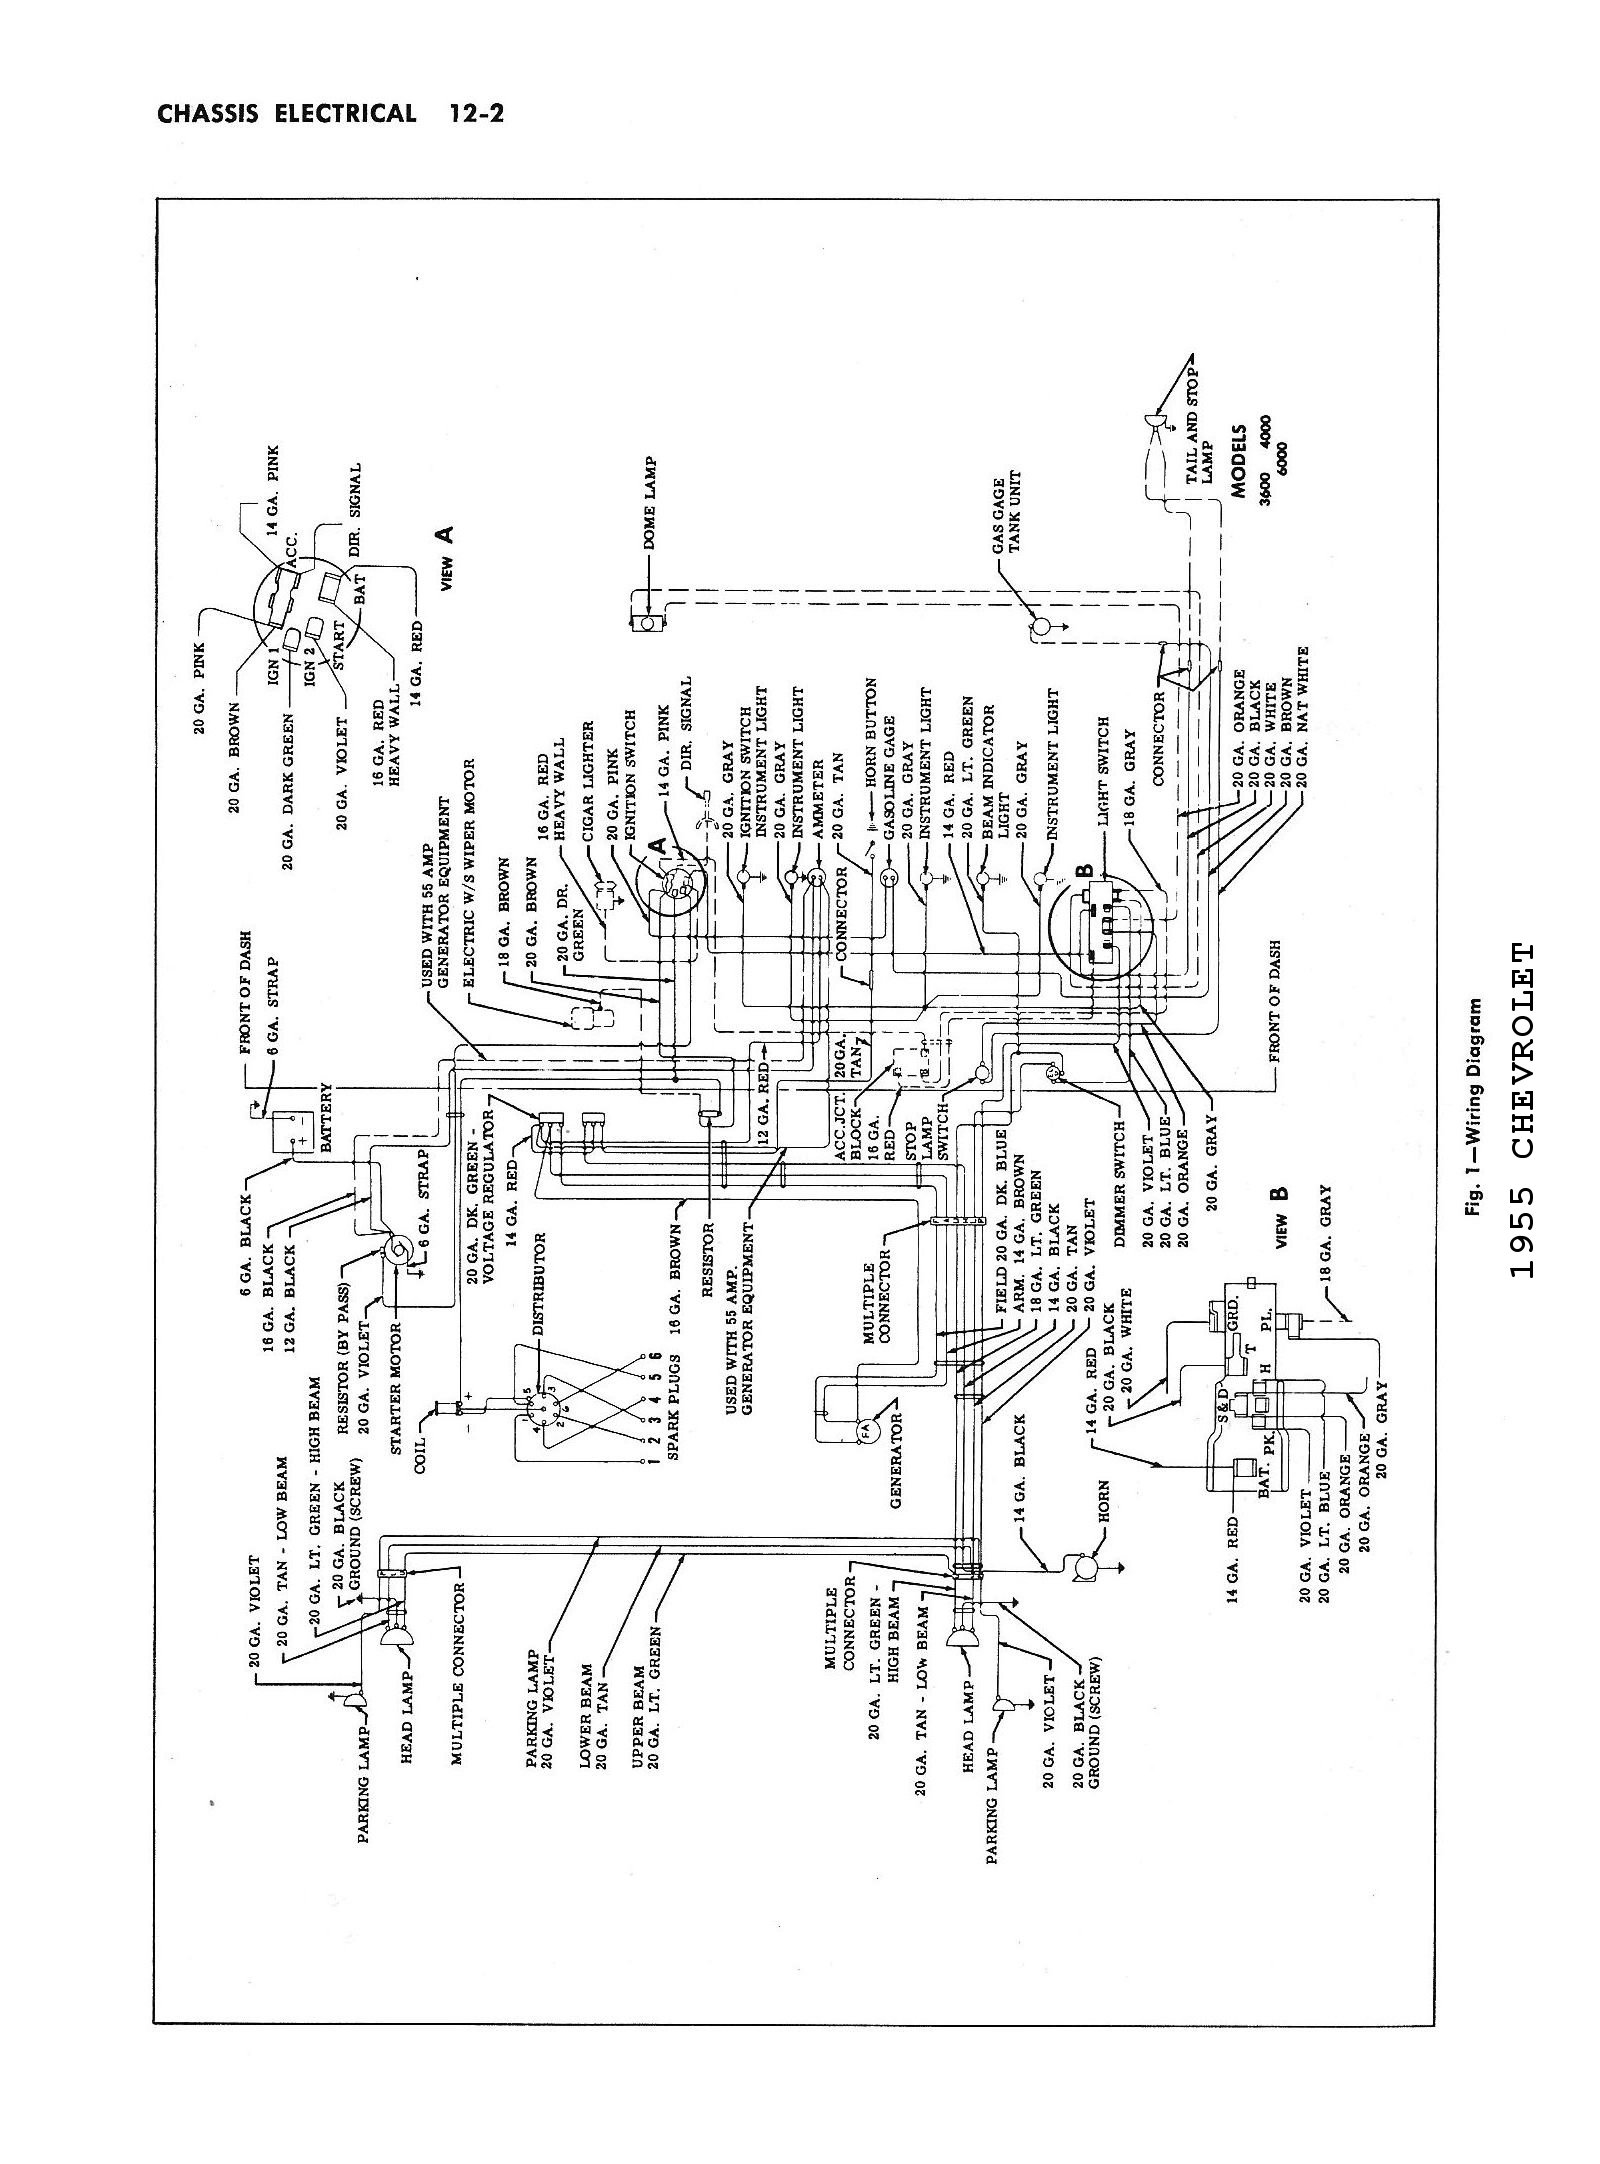 hight resolution of dutchmen wiring diagrams wiring library coachmen wiring diagram 1959 chevy pickup wiring diagram simple wiring diagram